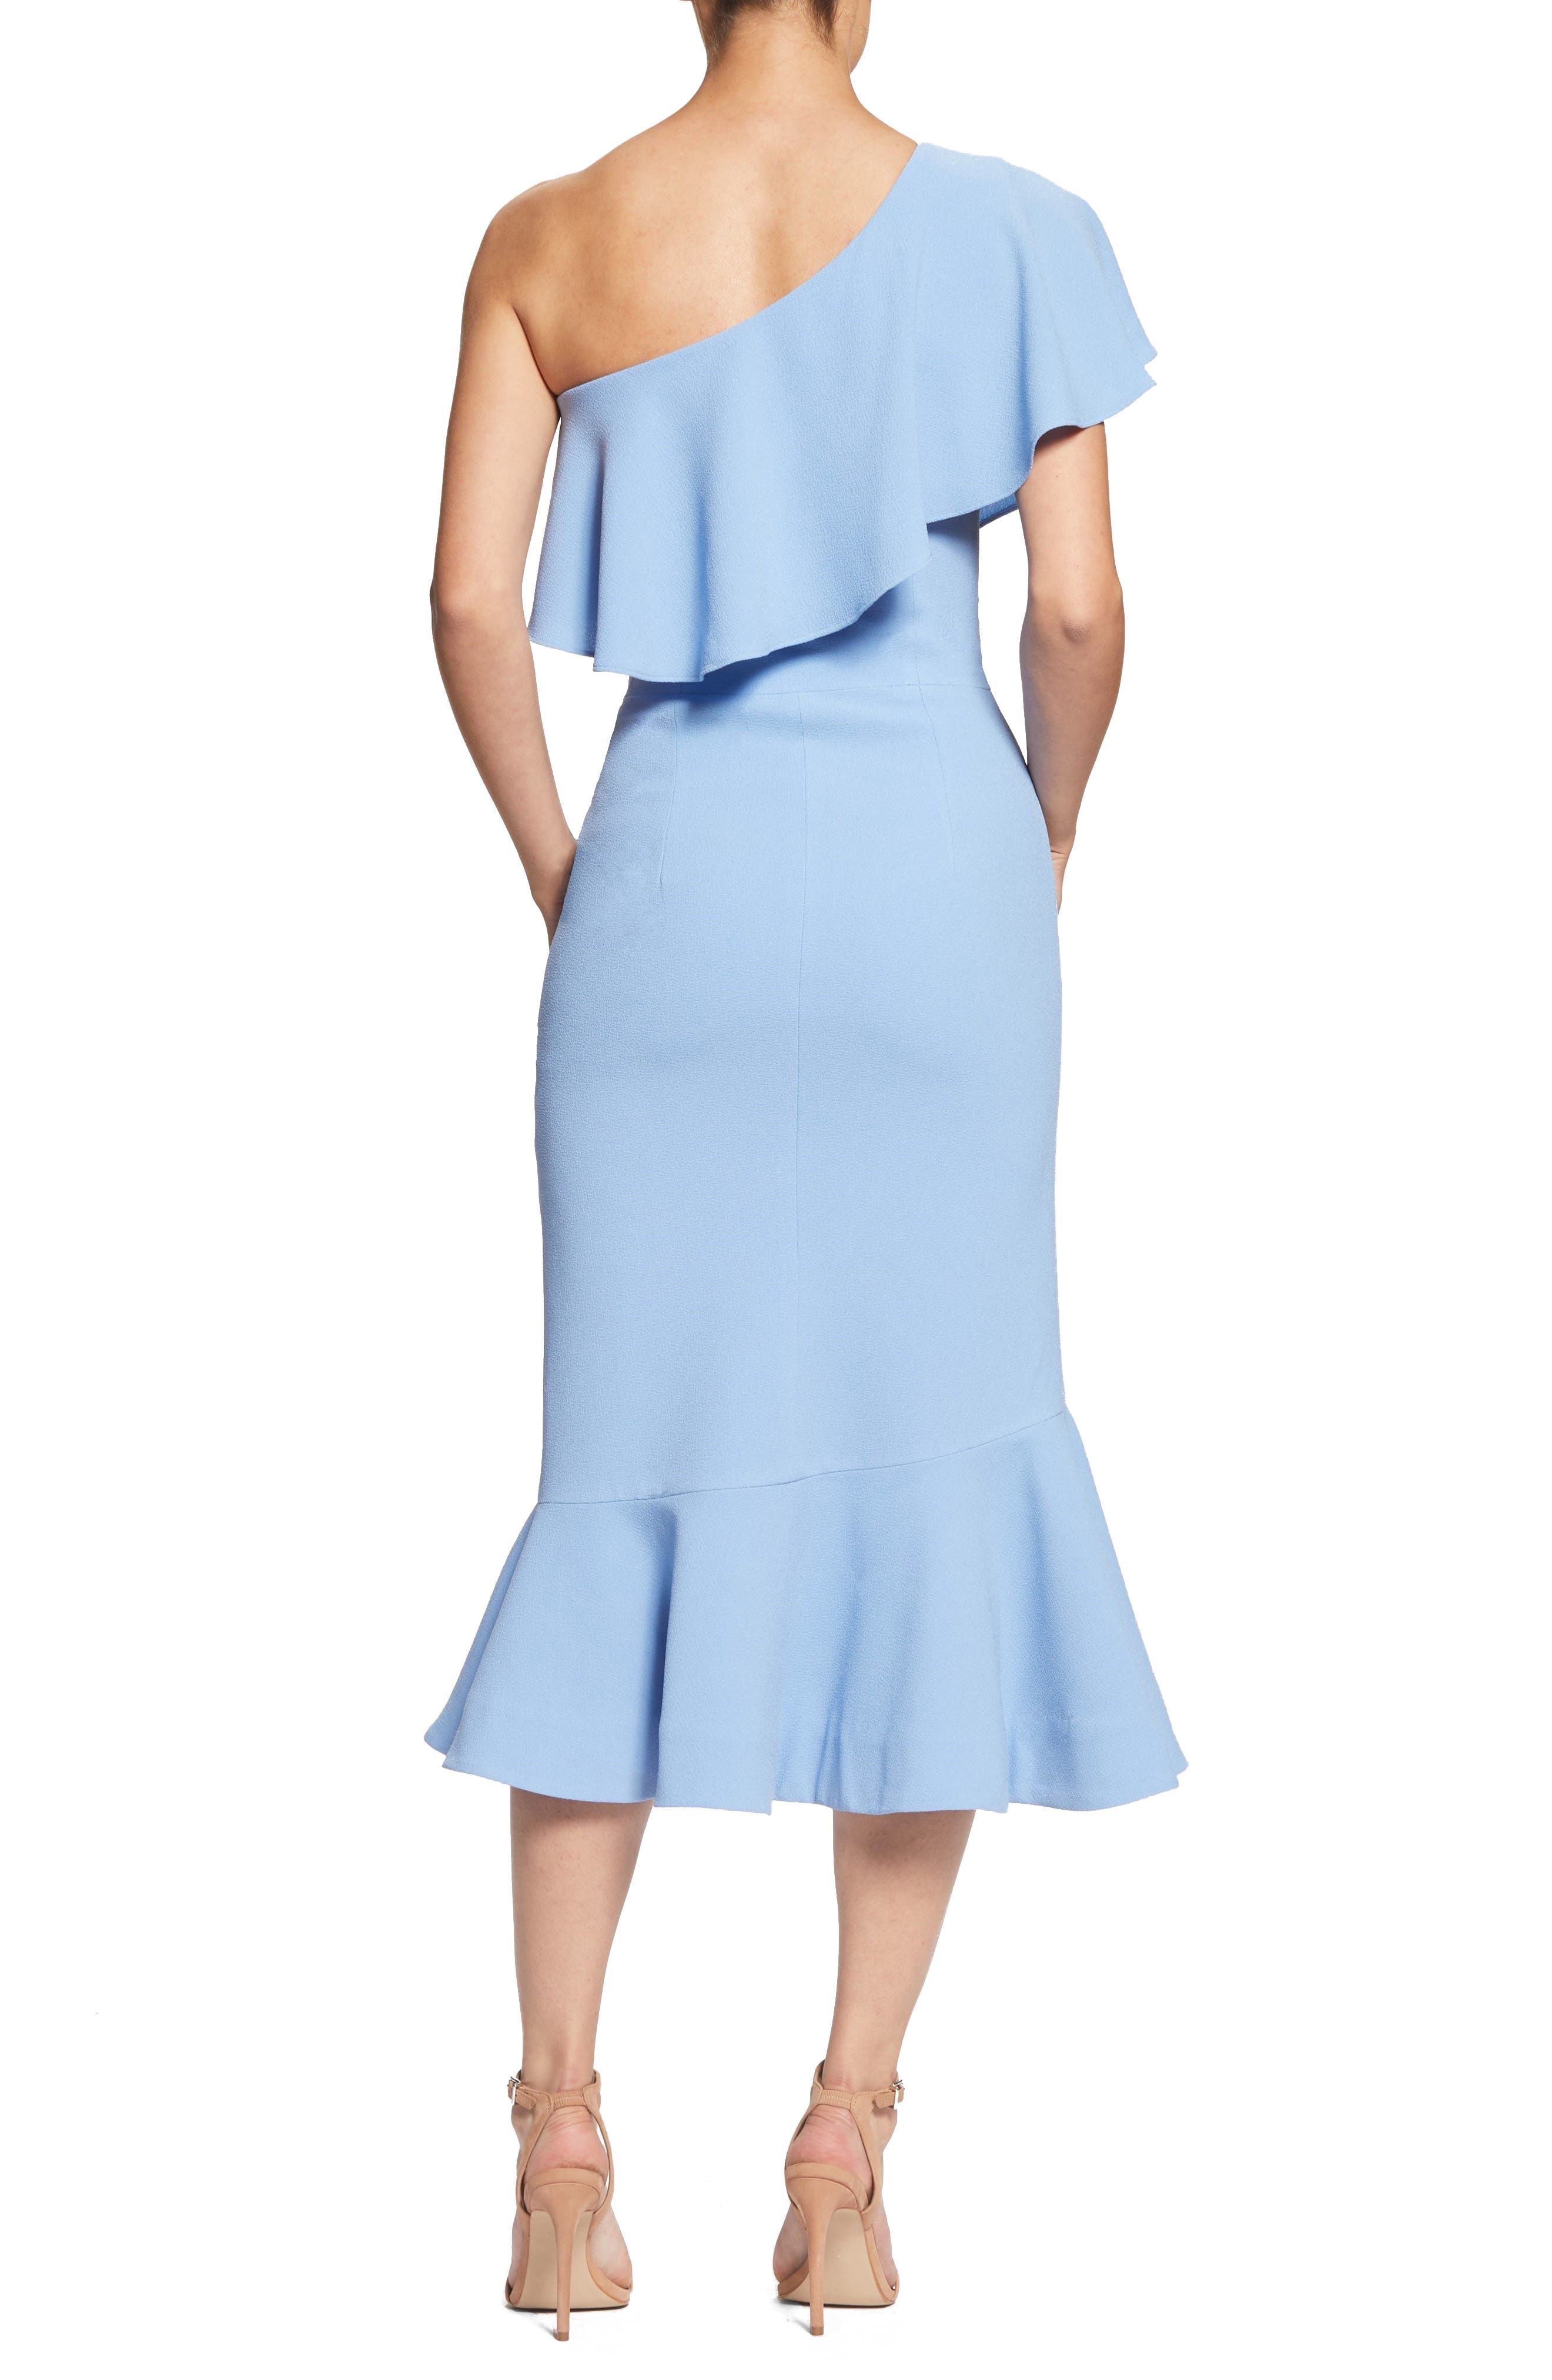 Raquel One-Shoulder Trumpet Dress,                             Alternate thumbnail 3, color,                             Ice Blue